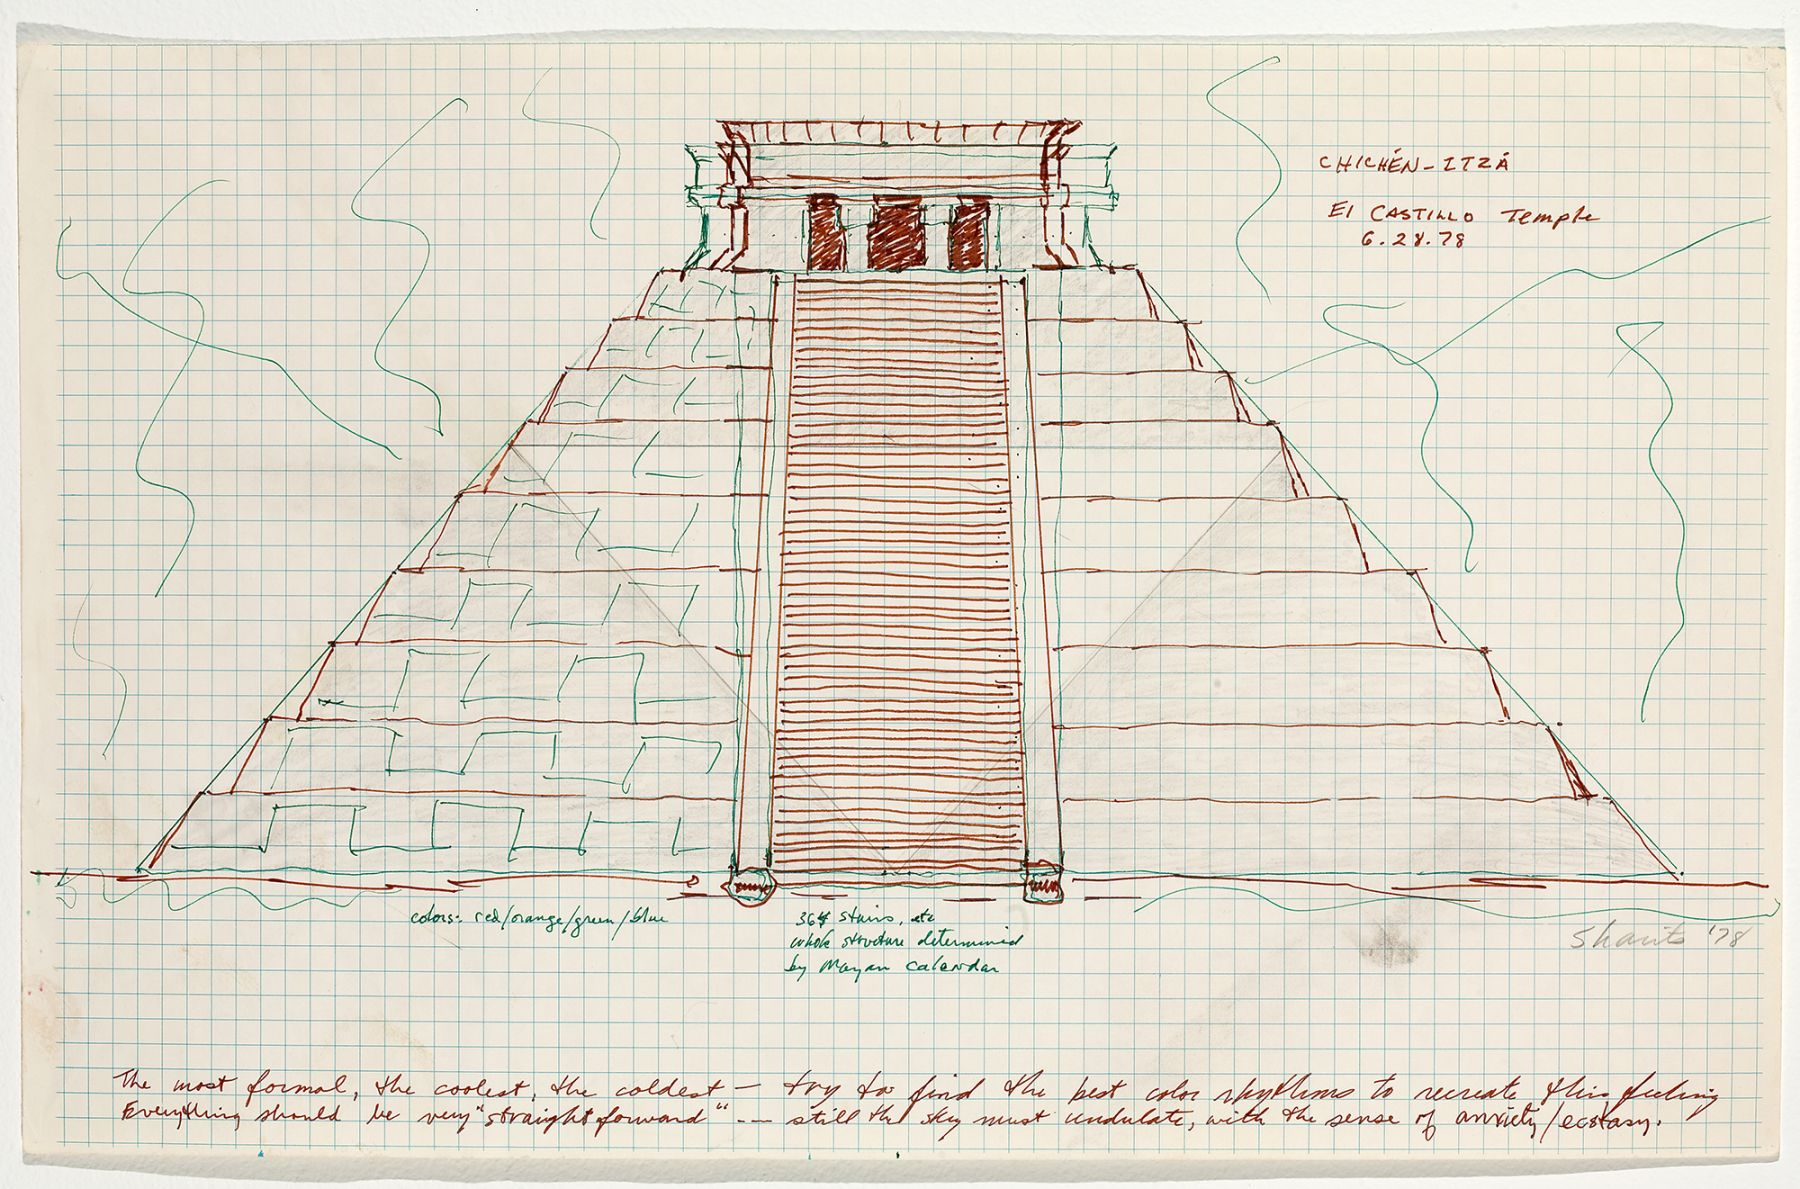 Chichen-Itza El Castillo Temple, 1978, colored ink on paper, 11 x 17 1/2 inches